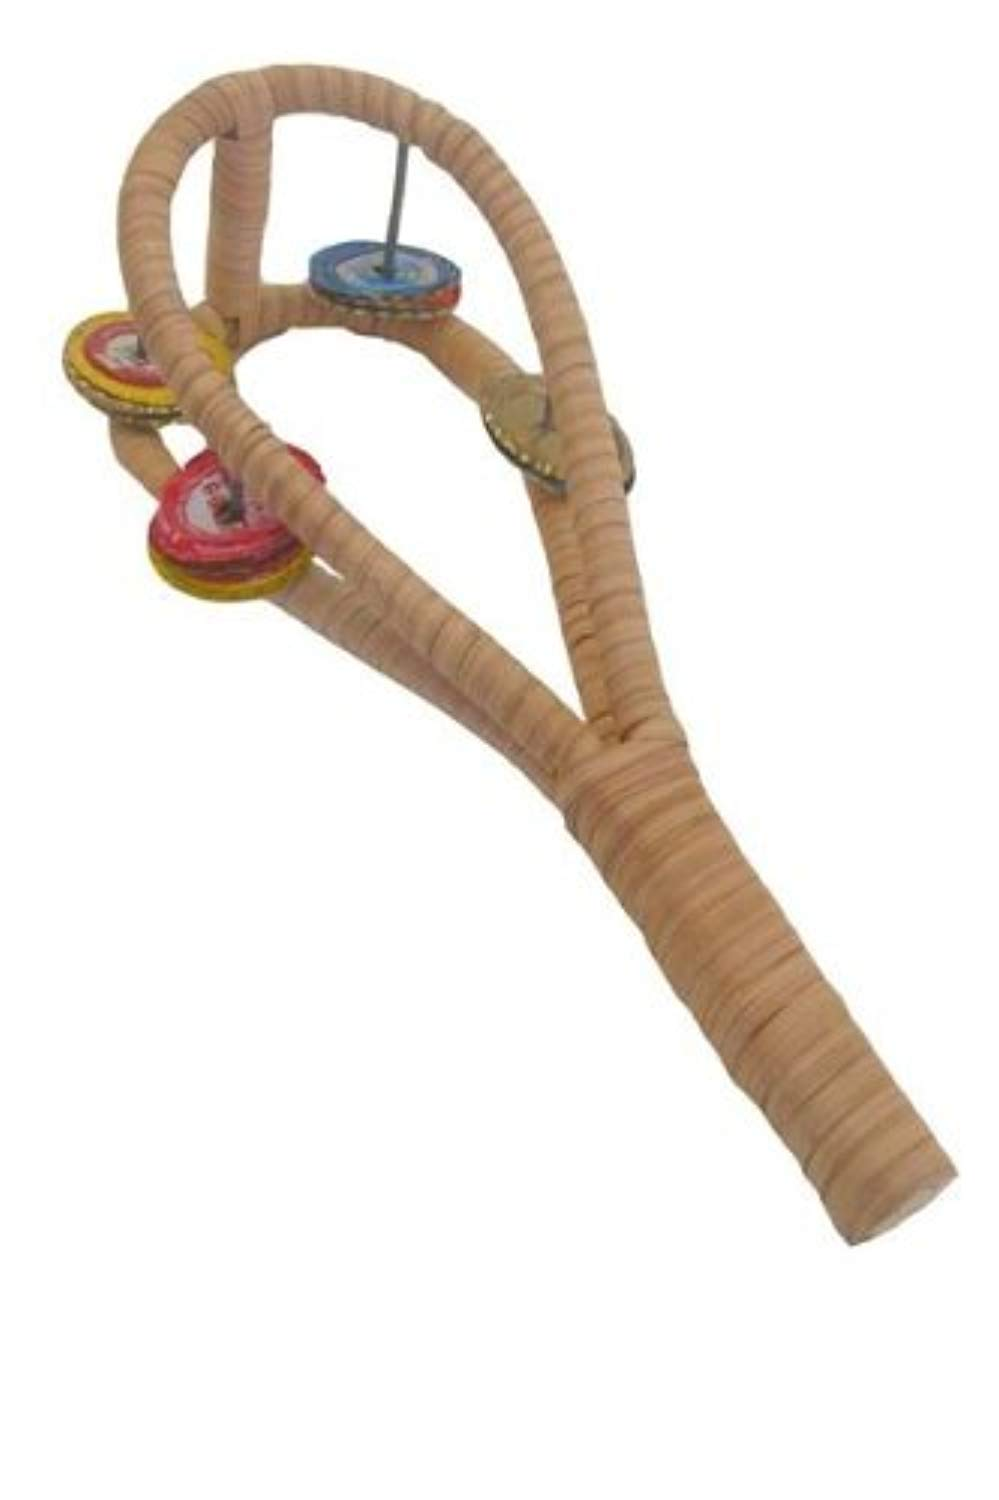 African Bottle Cap Tambourine, Double Sistrum Shaker Rattle